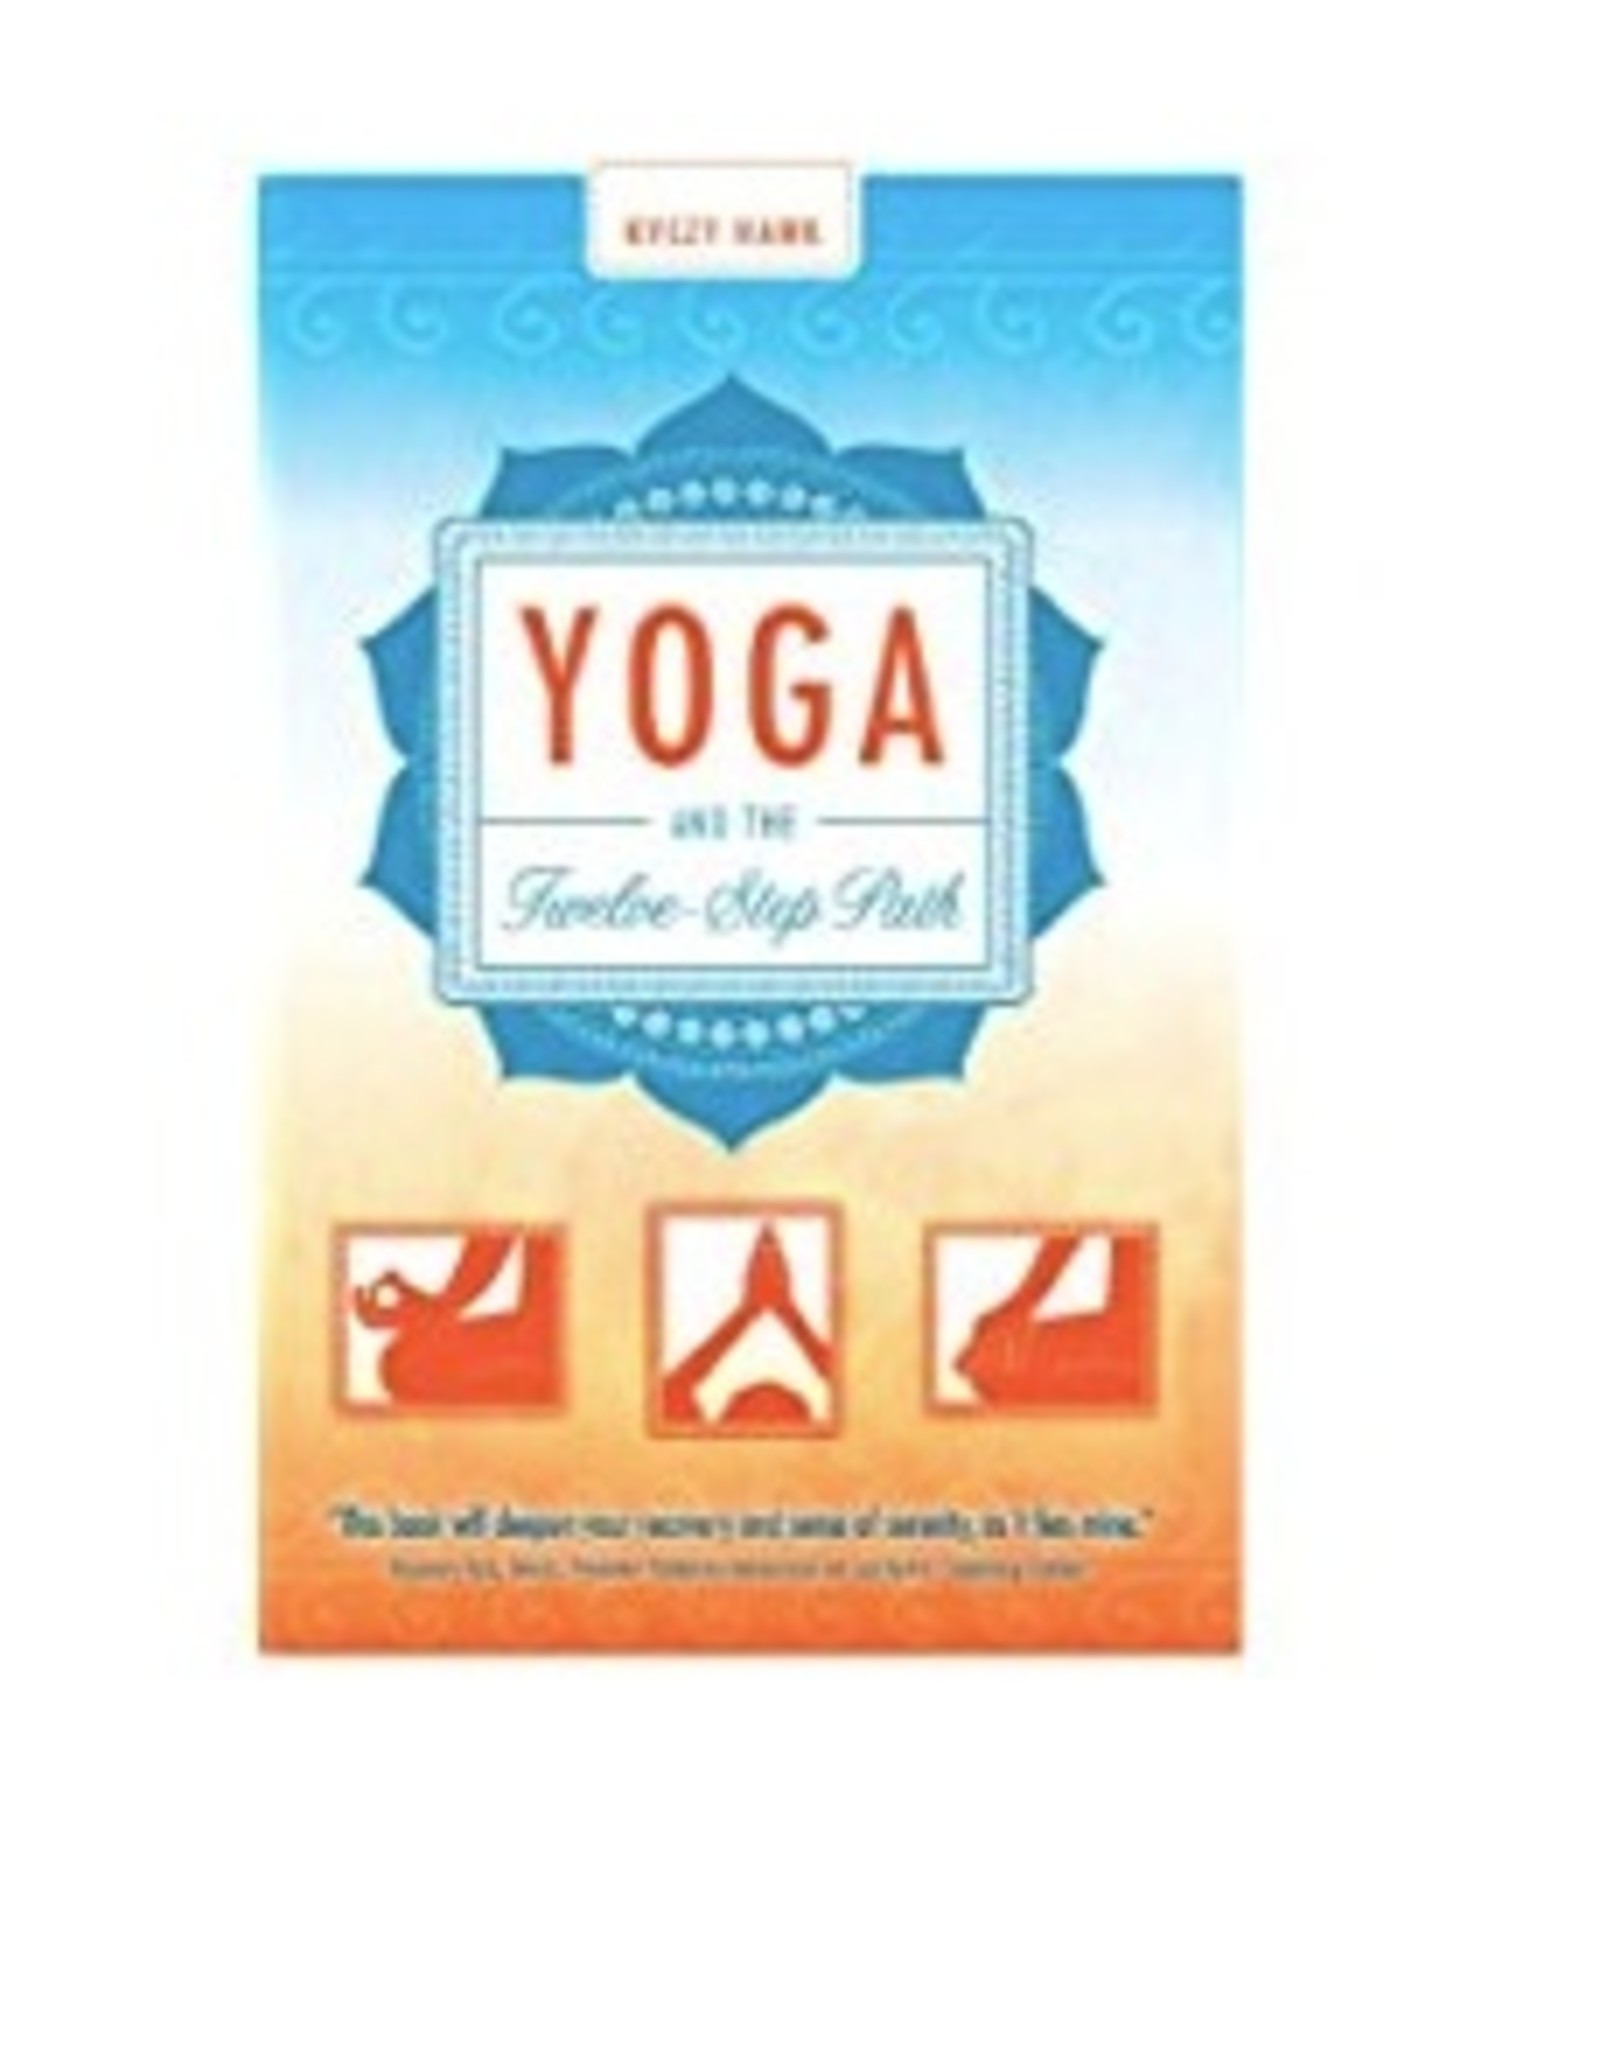 Yoga and the Twelve-Step Path